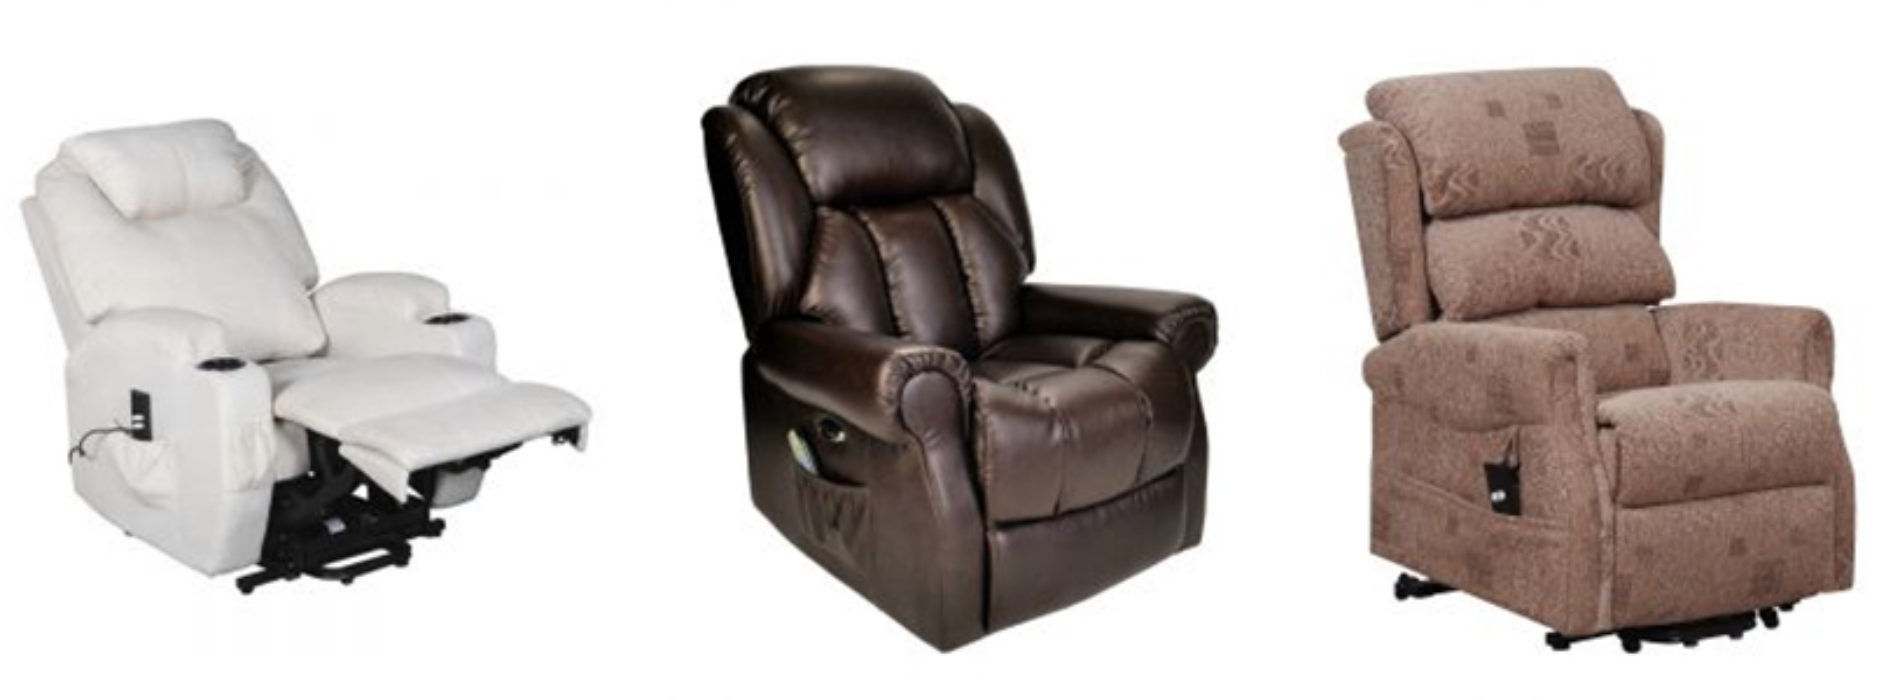 How to make the most of your recliner chair